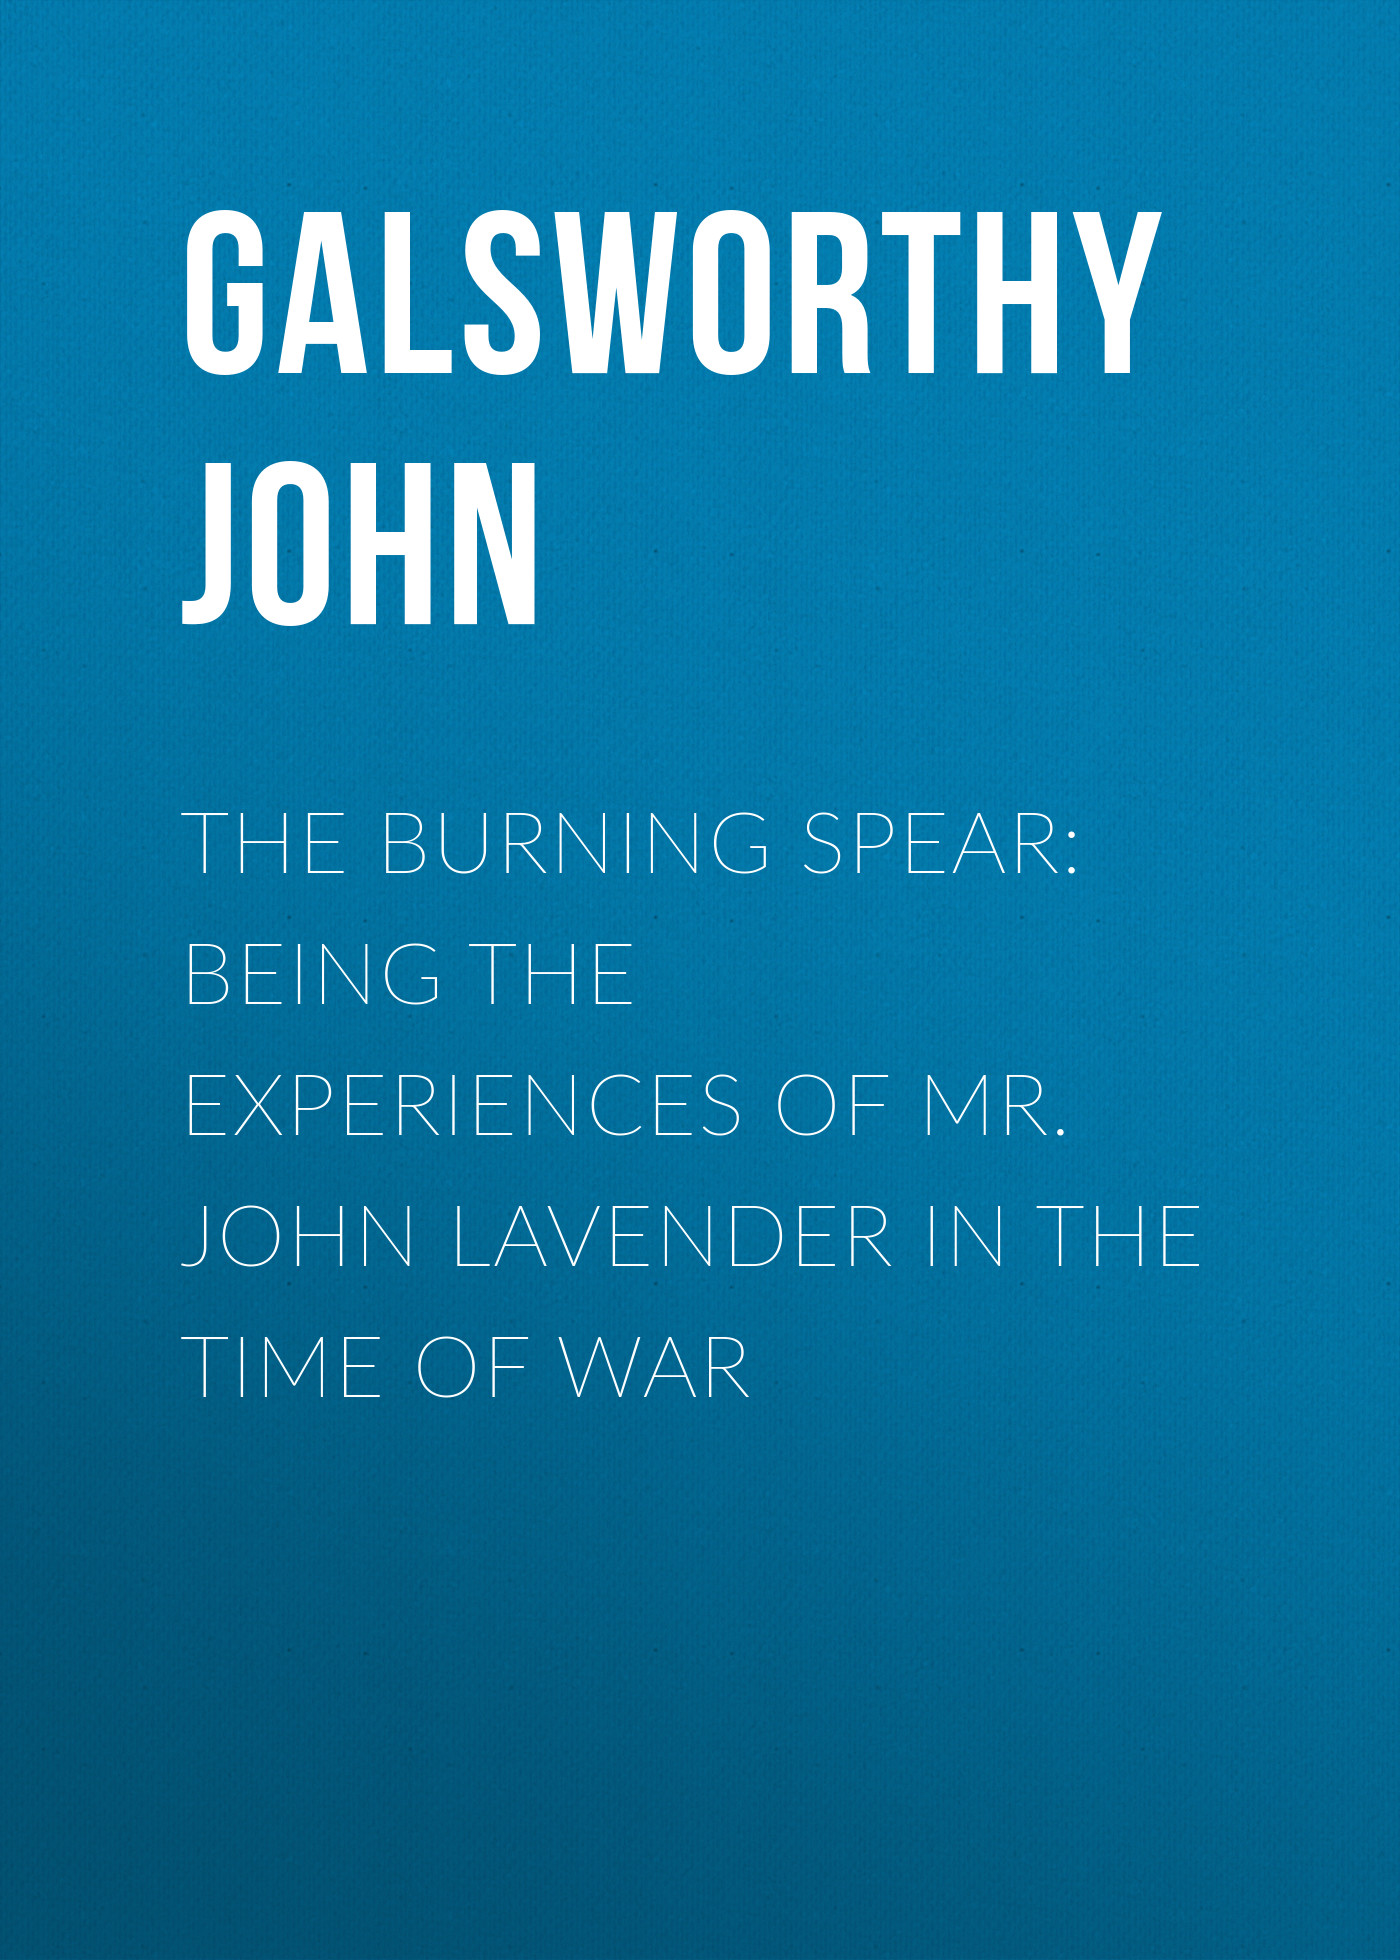 Galsworthy John The Burning Spear: Being the Experiences of Mr. John Lavender in the Time of War